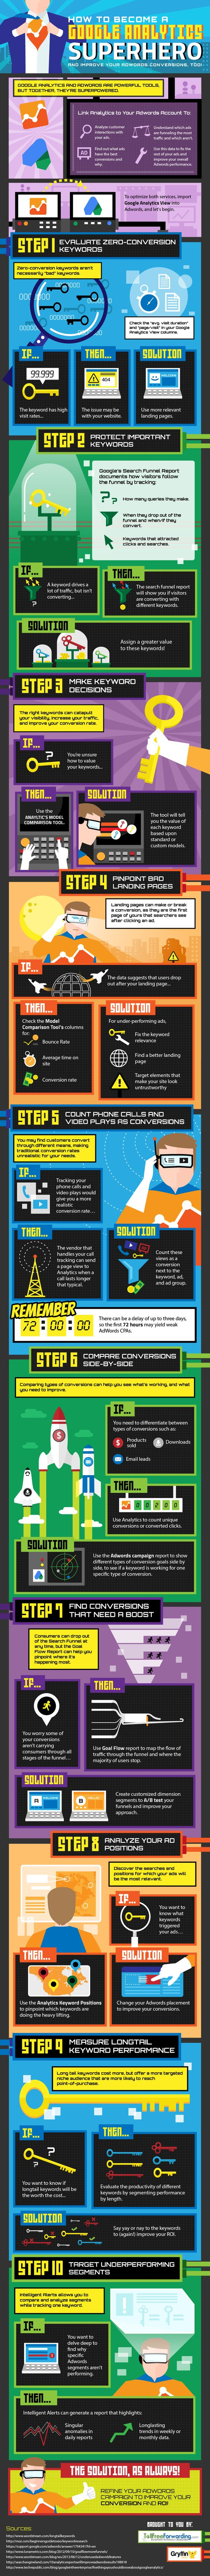 How To Become A Google Analytics Superhero and Improve Your Adwords Conversion, Too - #infographic